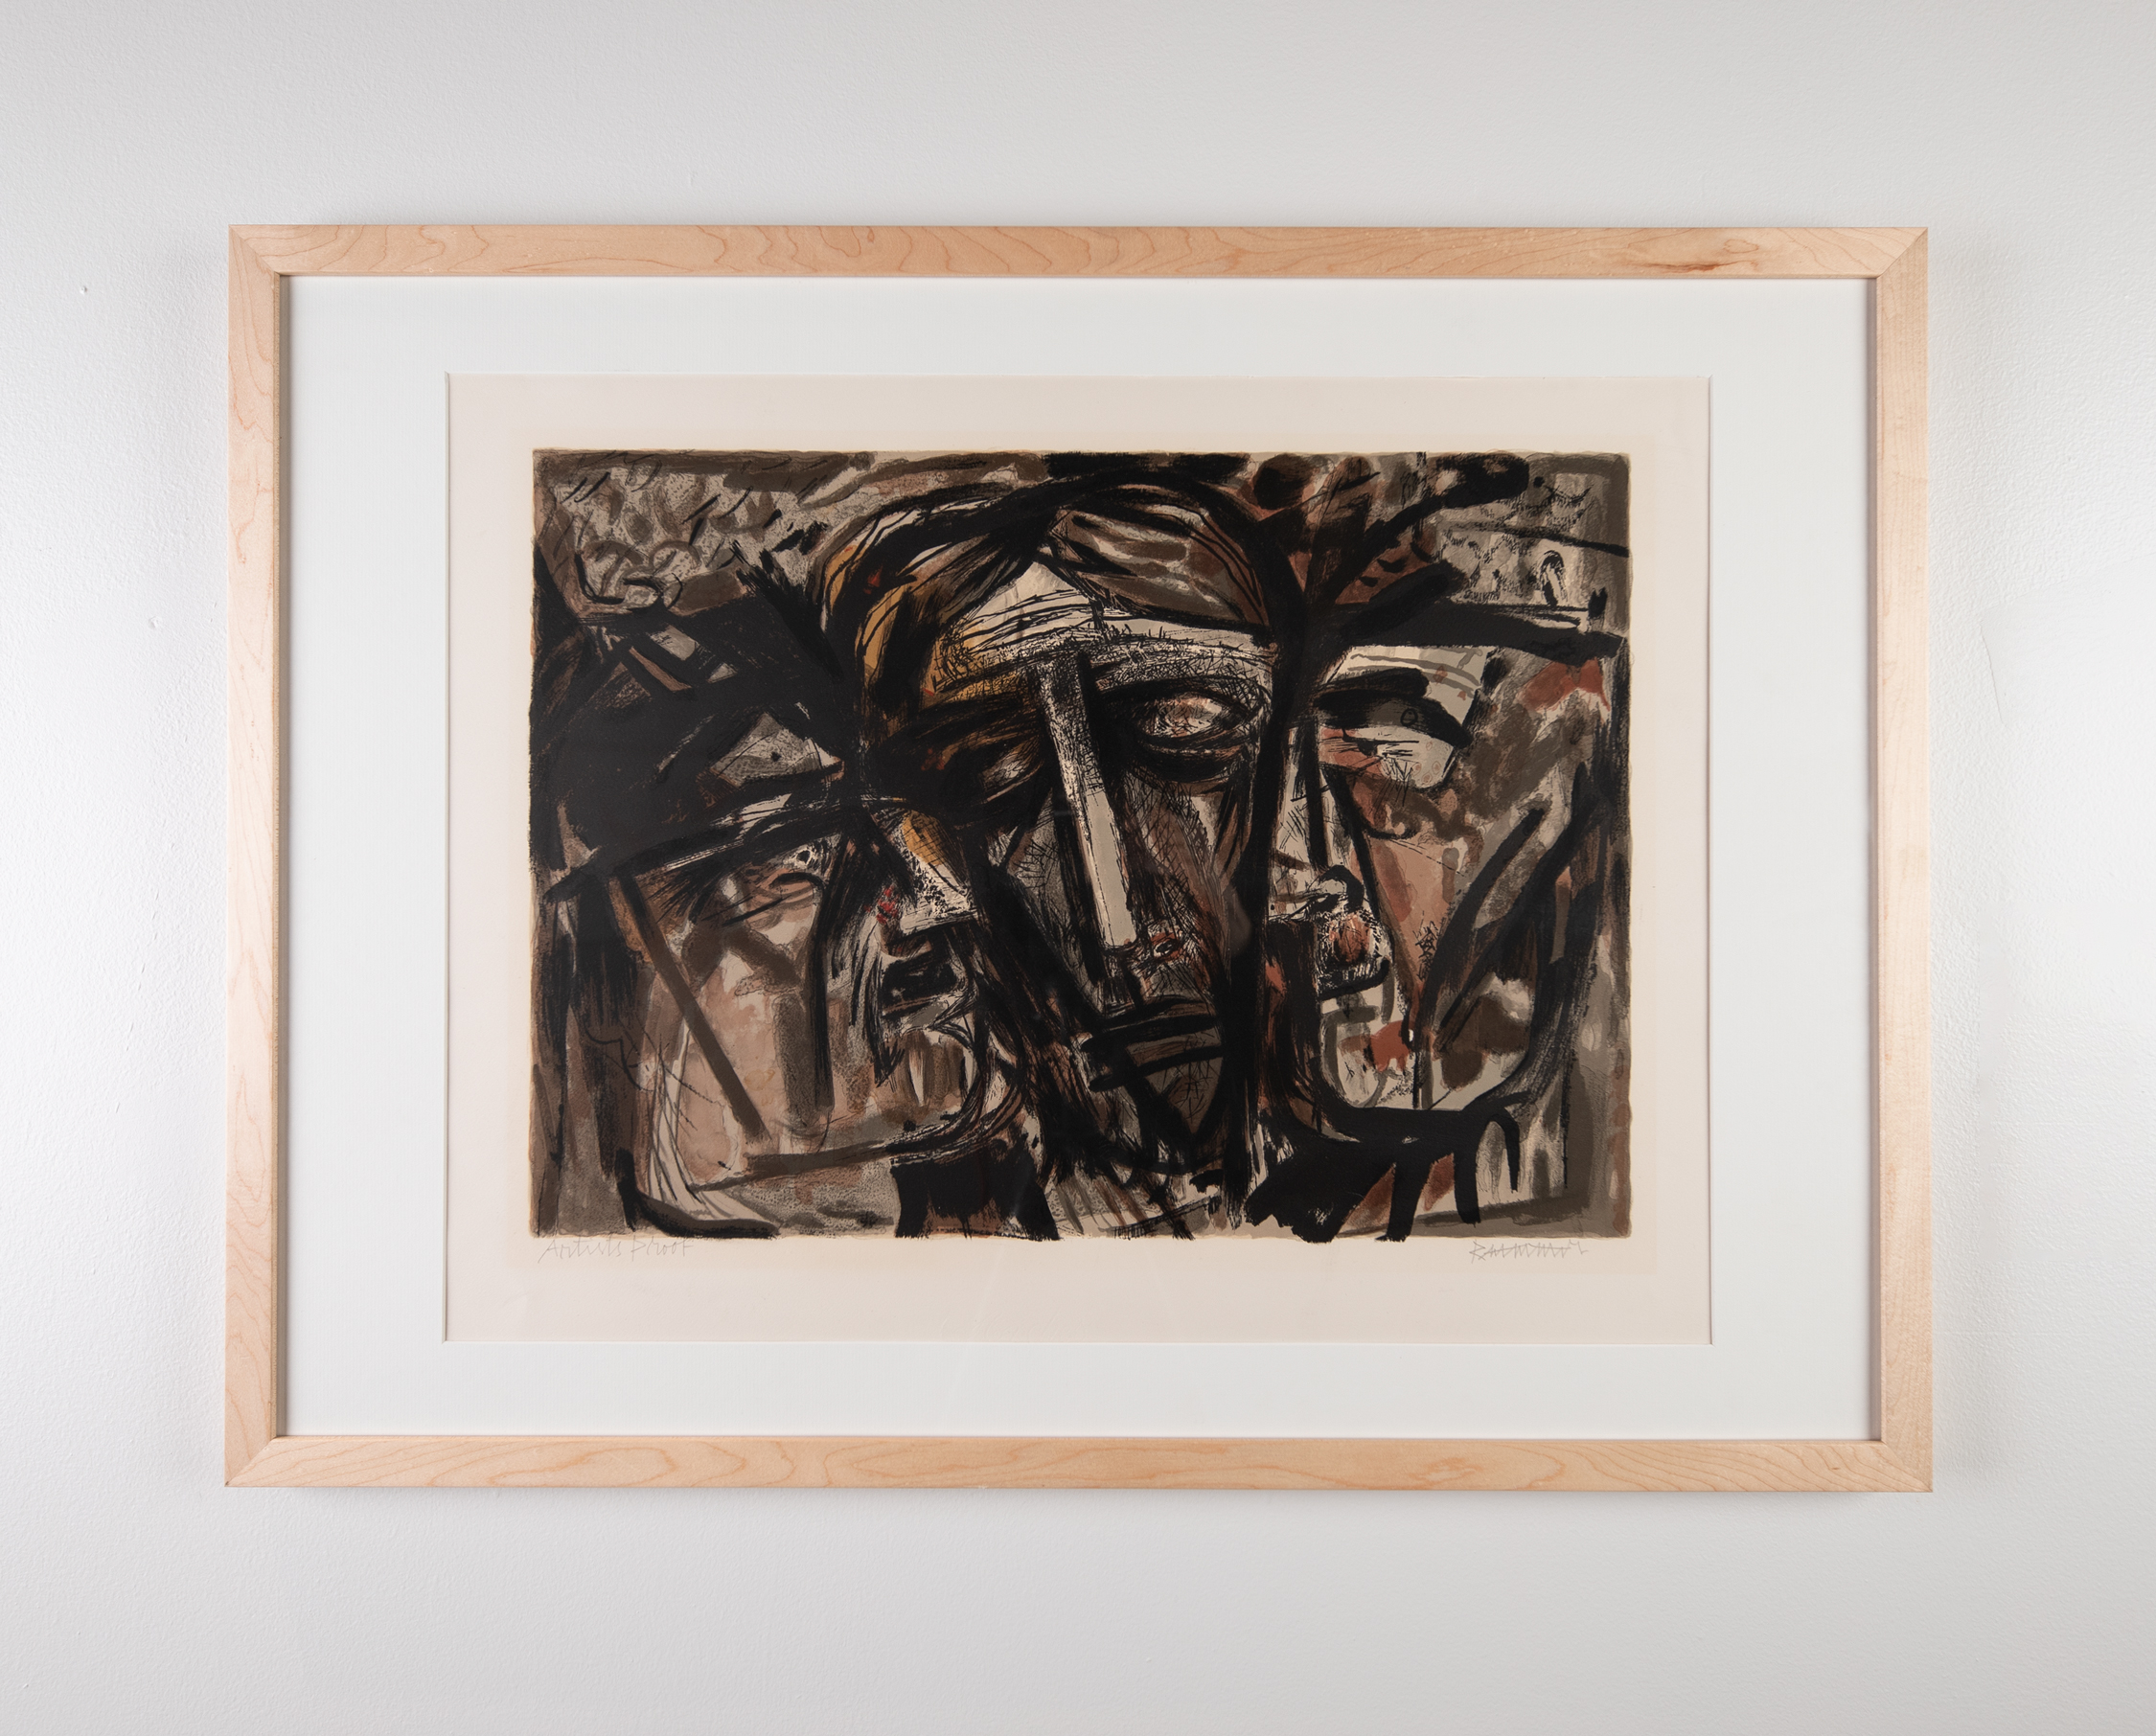 Abraham Rattner, Three Heads, Lithography, 21in. x 27.5in., 1969